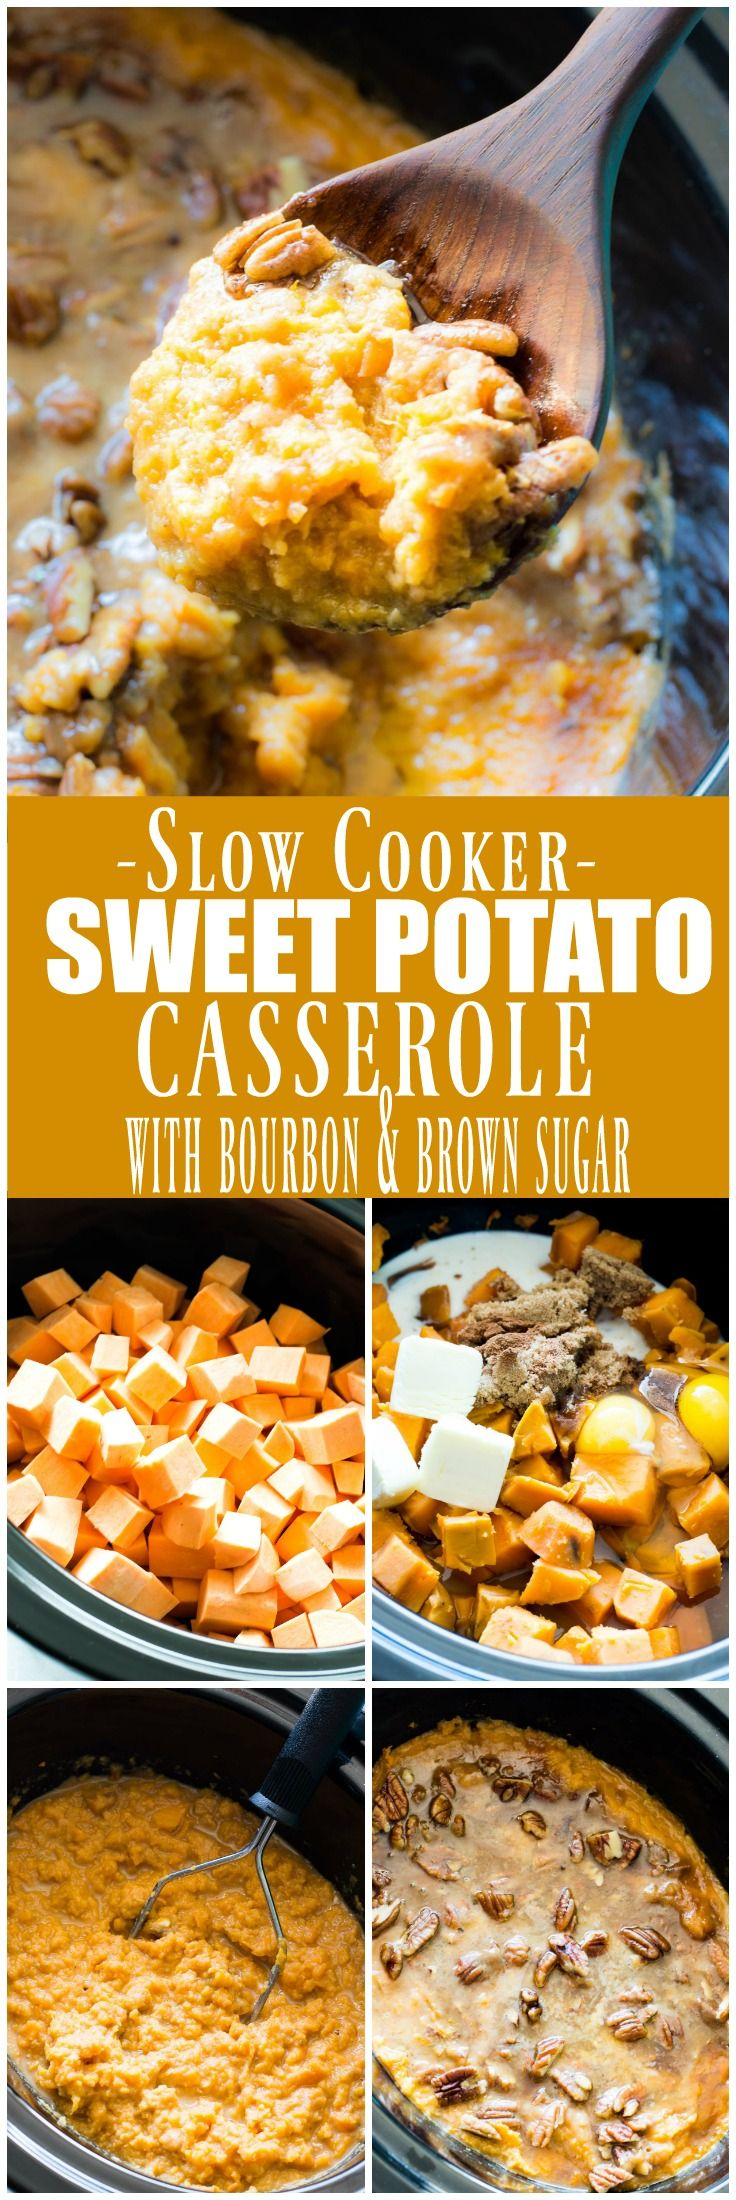 Slow Cooker Sweet Potato Casserole (made with Bourbon & Brown Sugar)